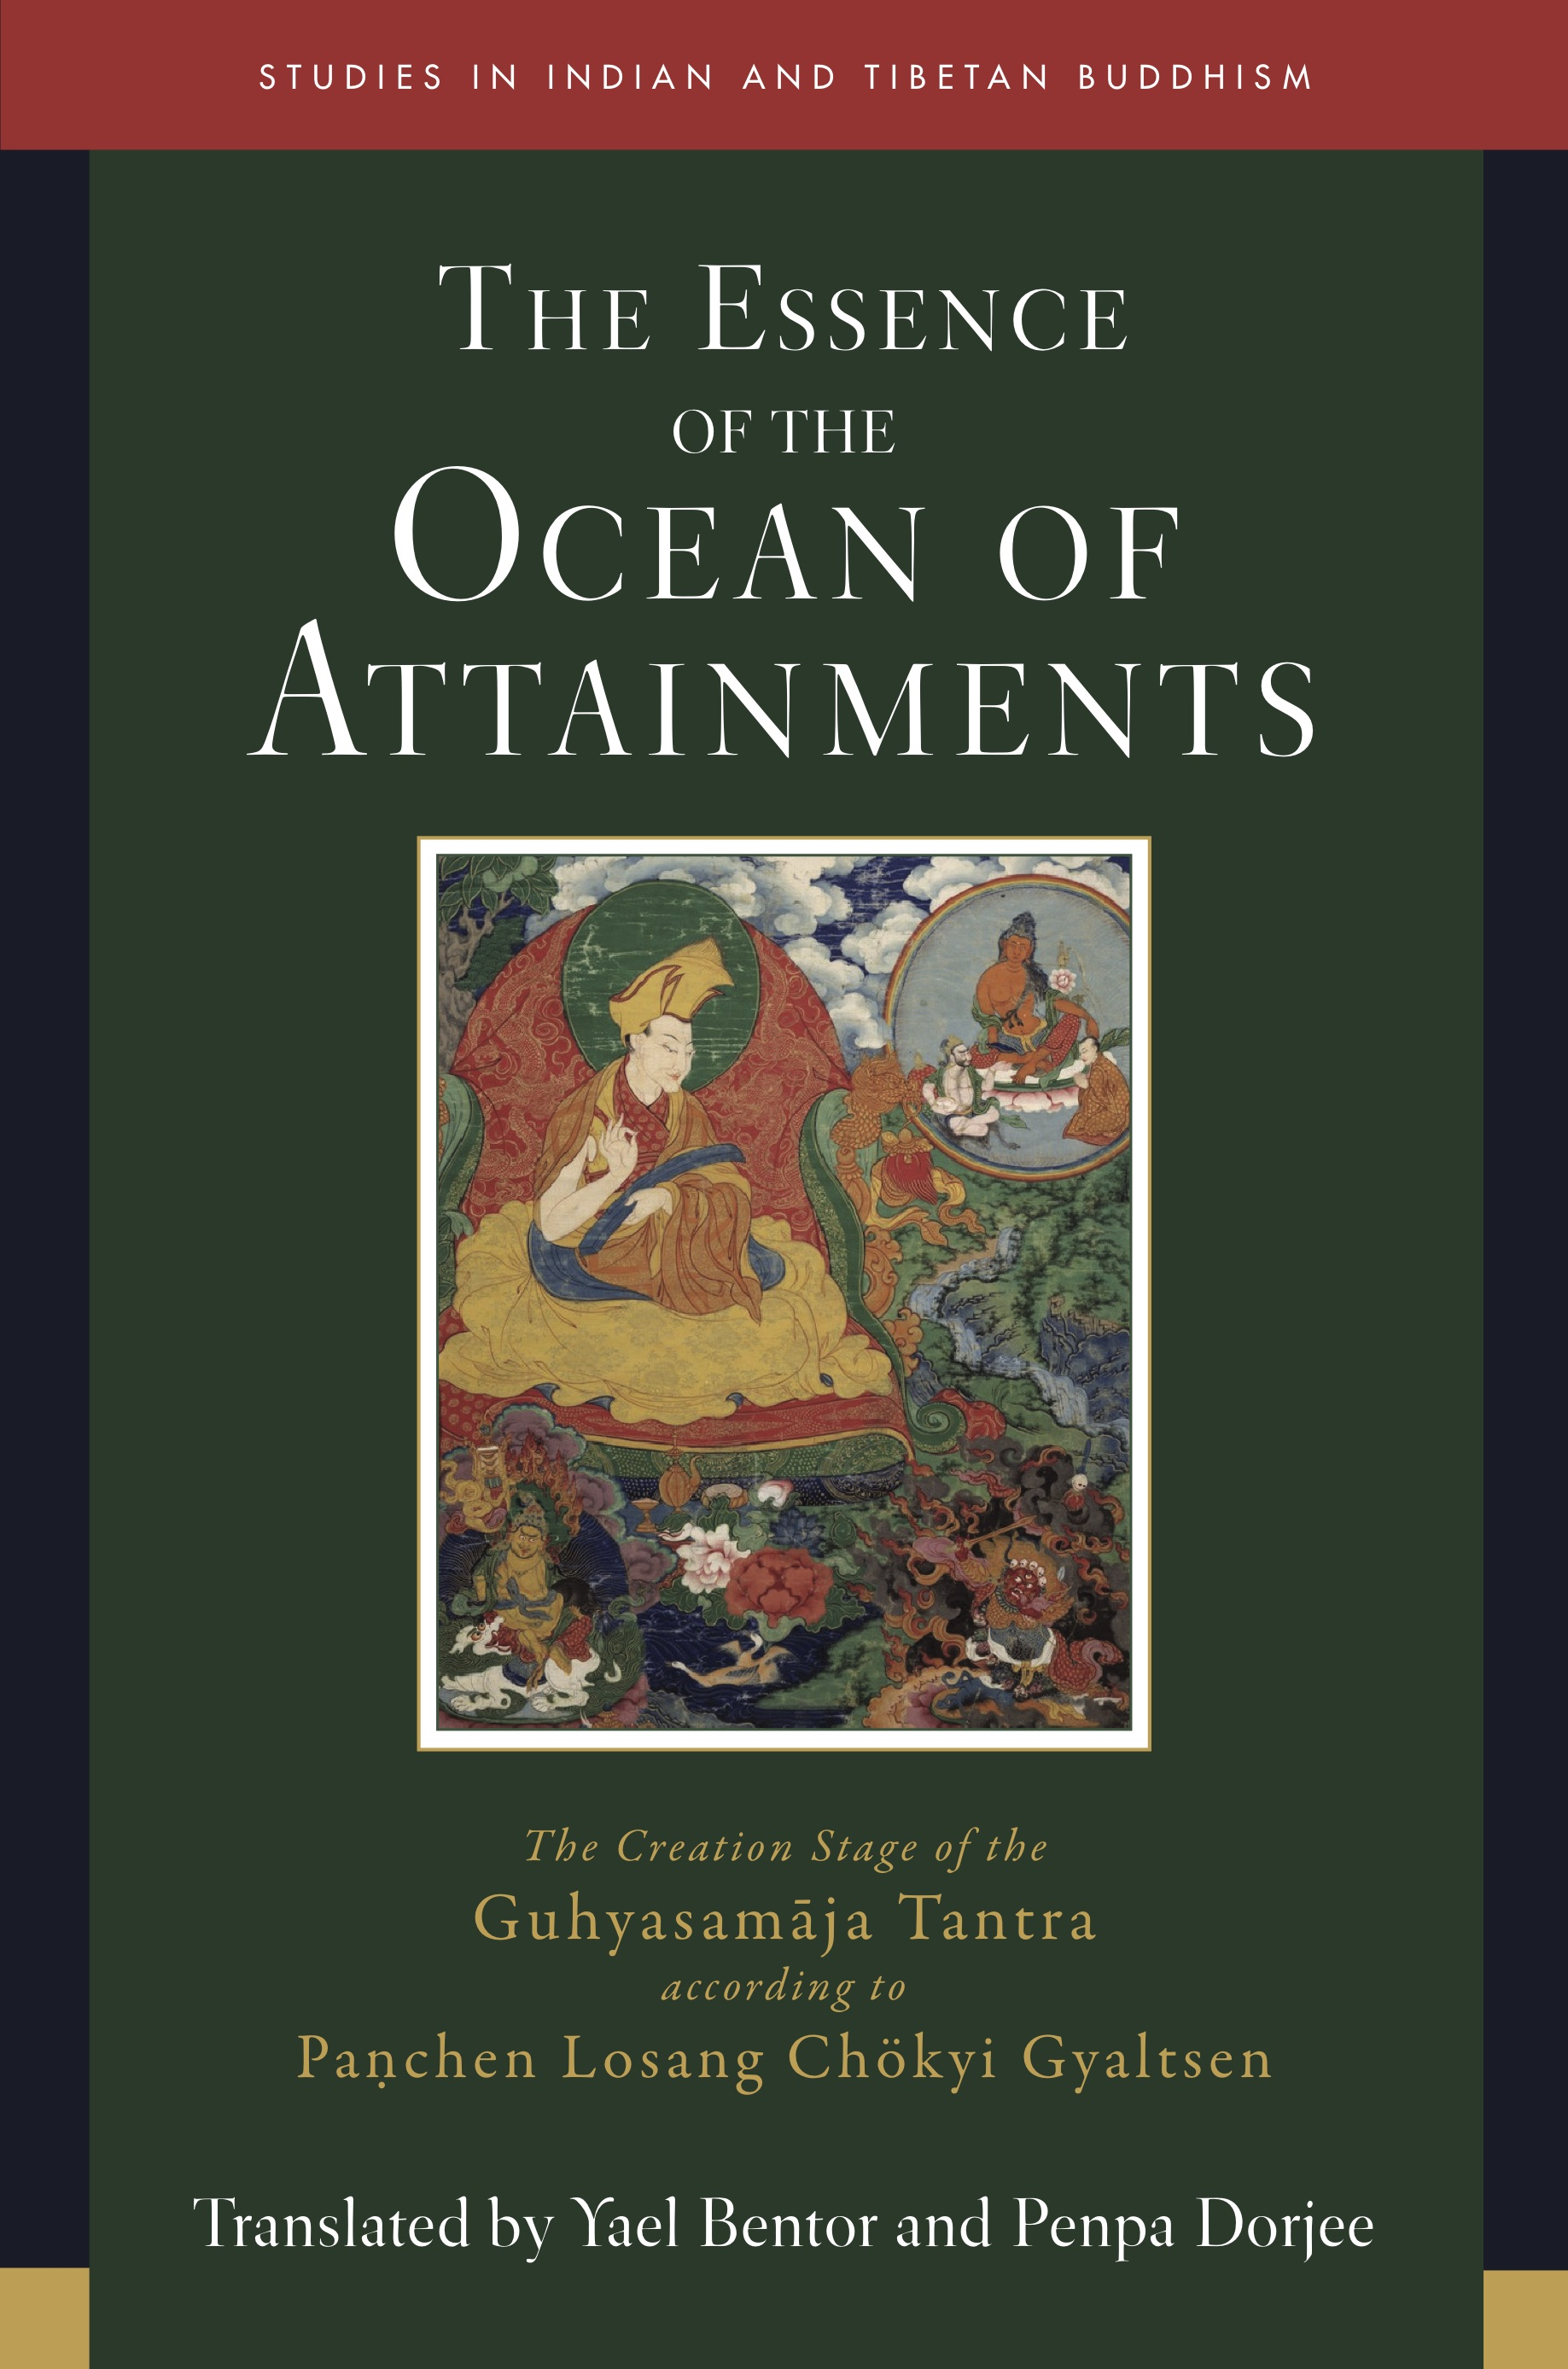 The Essence of the Ocean of Attainments